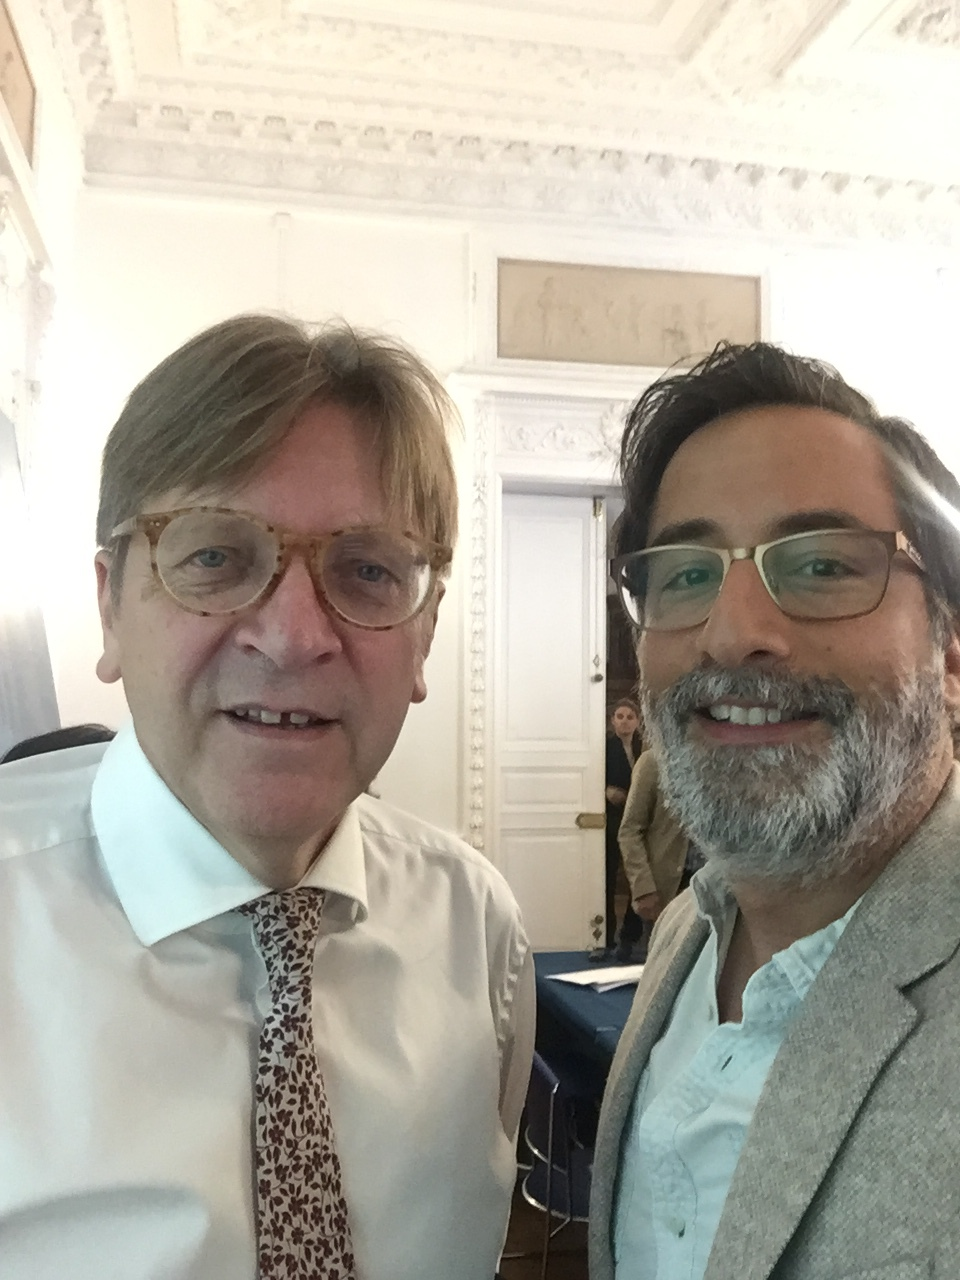 also at the conference: Guy Verhofstadt, Belgian liberal and member of the European Parliament